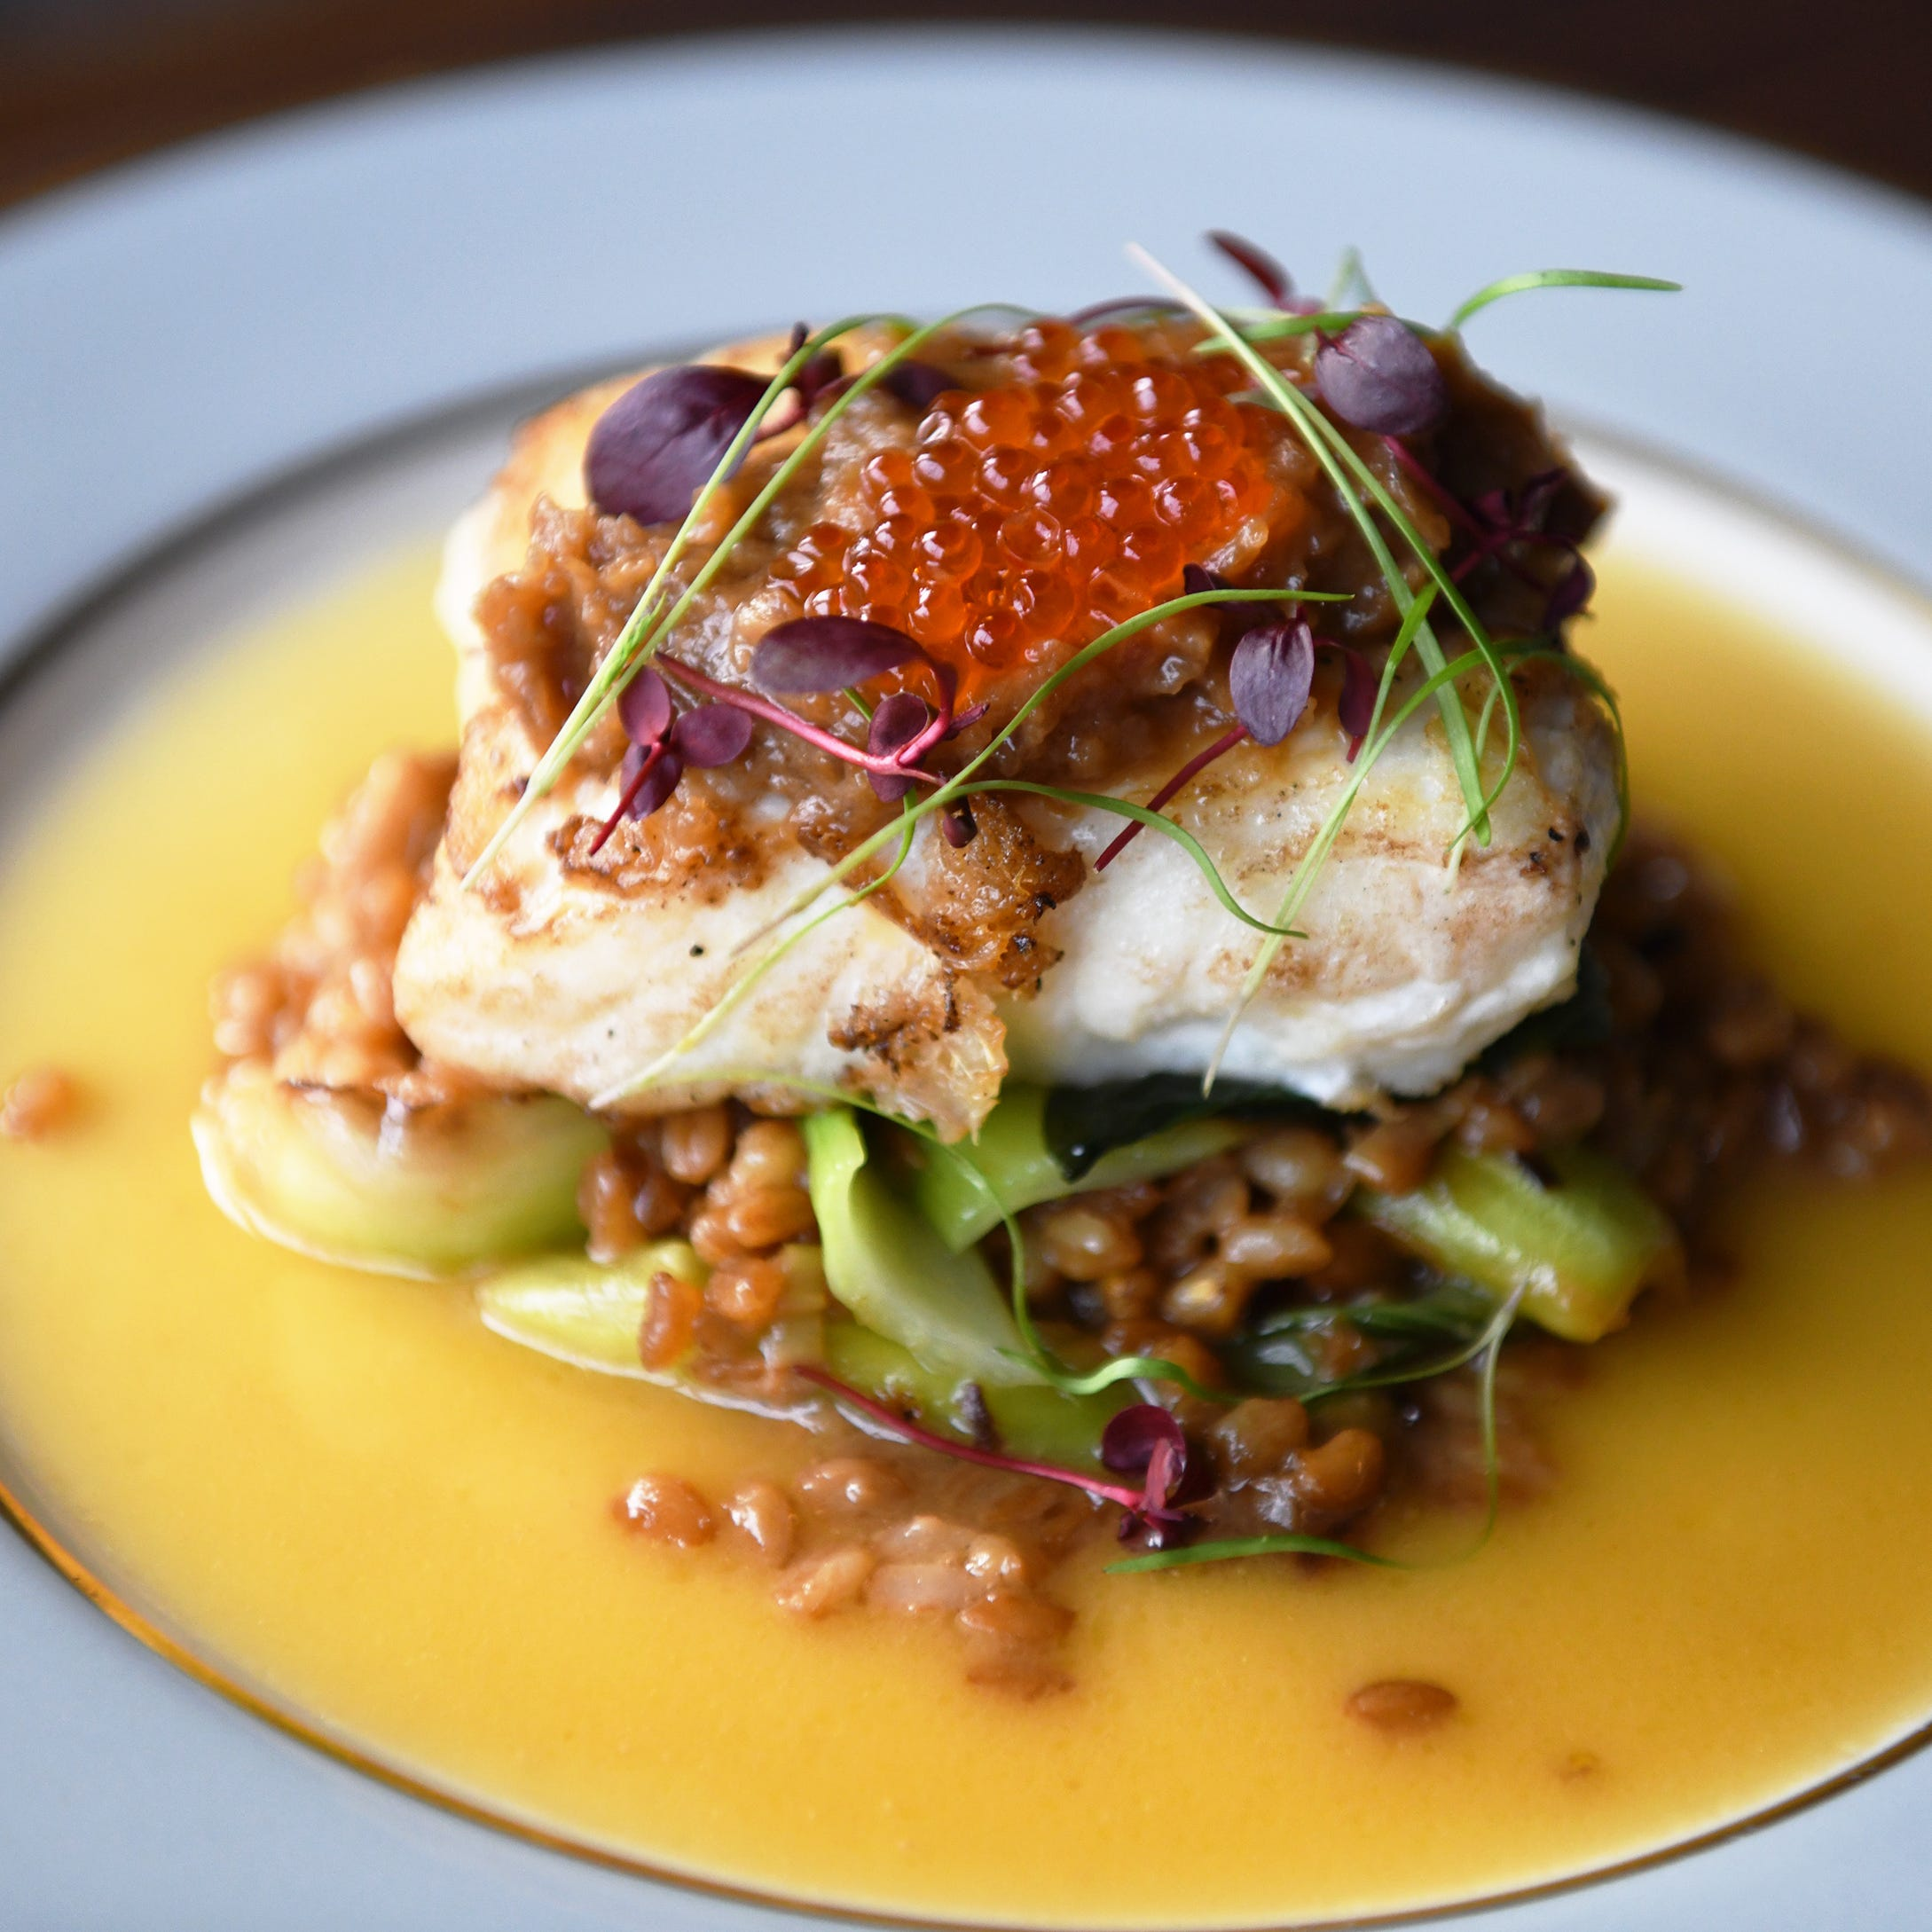 Porch & Proper impresses with an ambitious menu and impeccable service